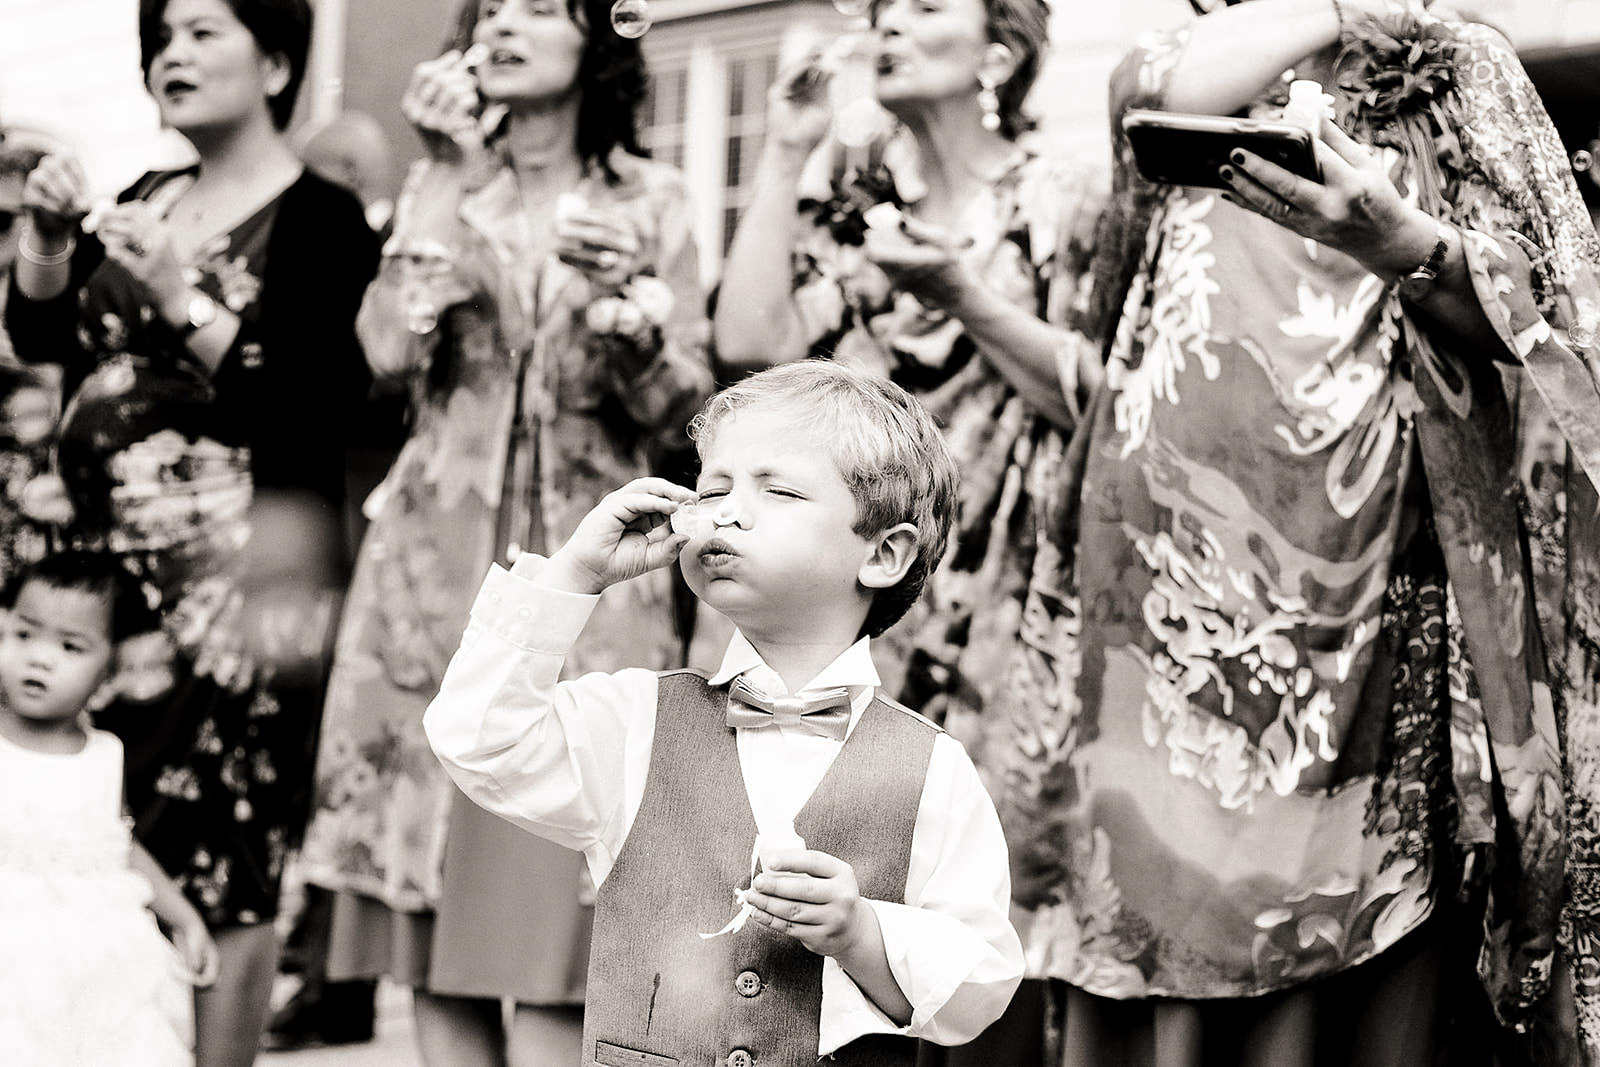 Cute little boy blowing bubbles at wedding